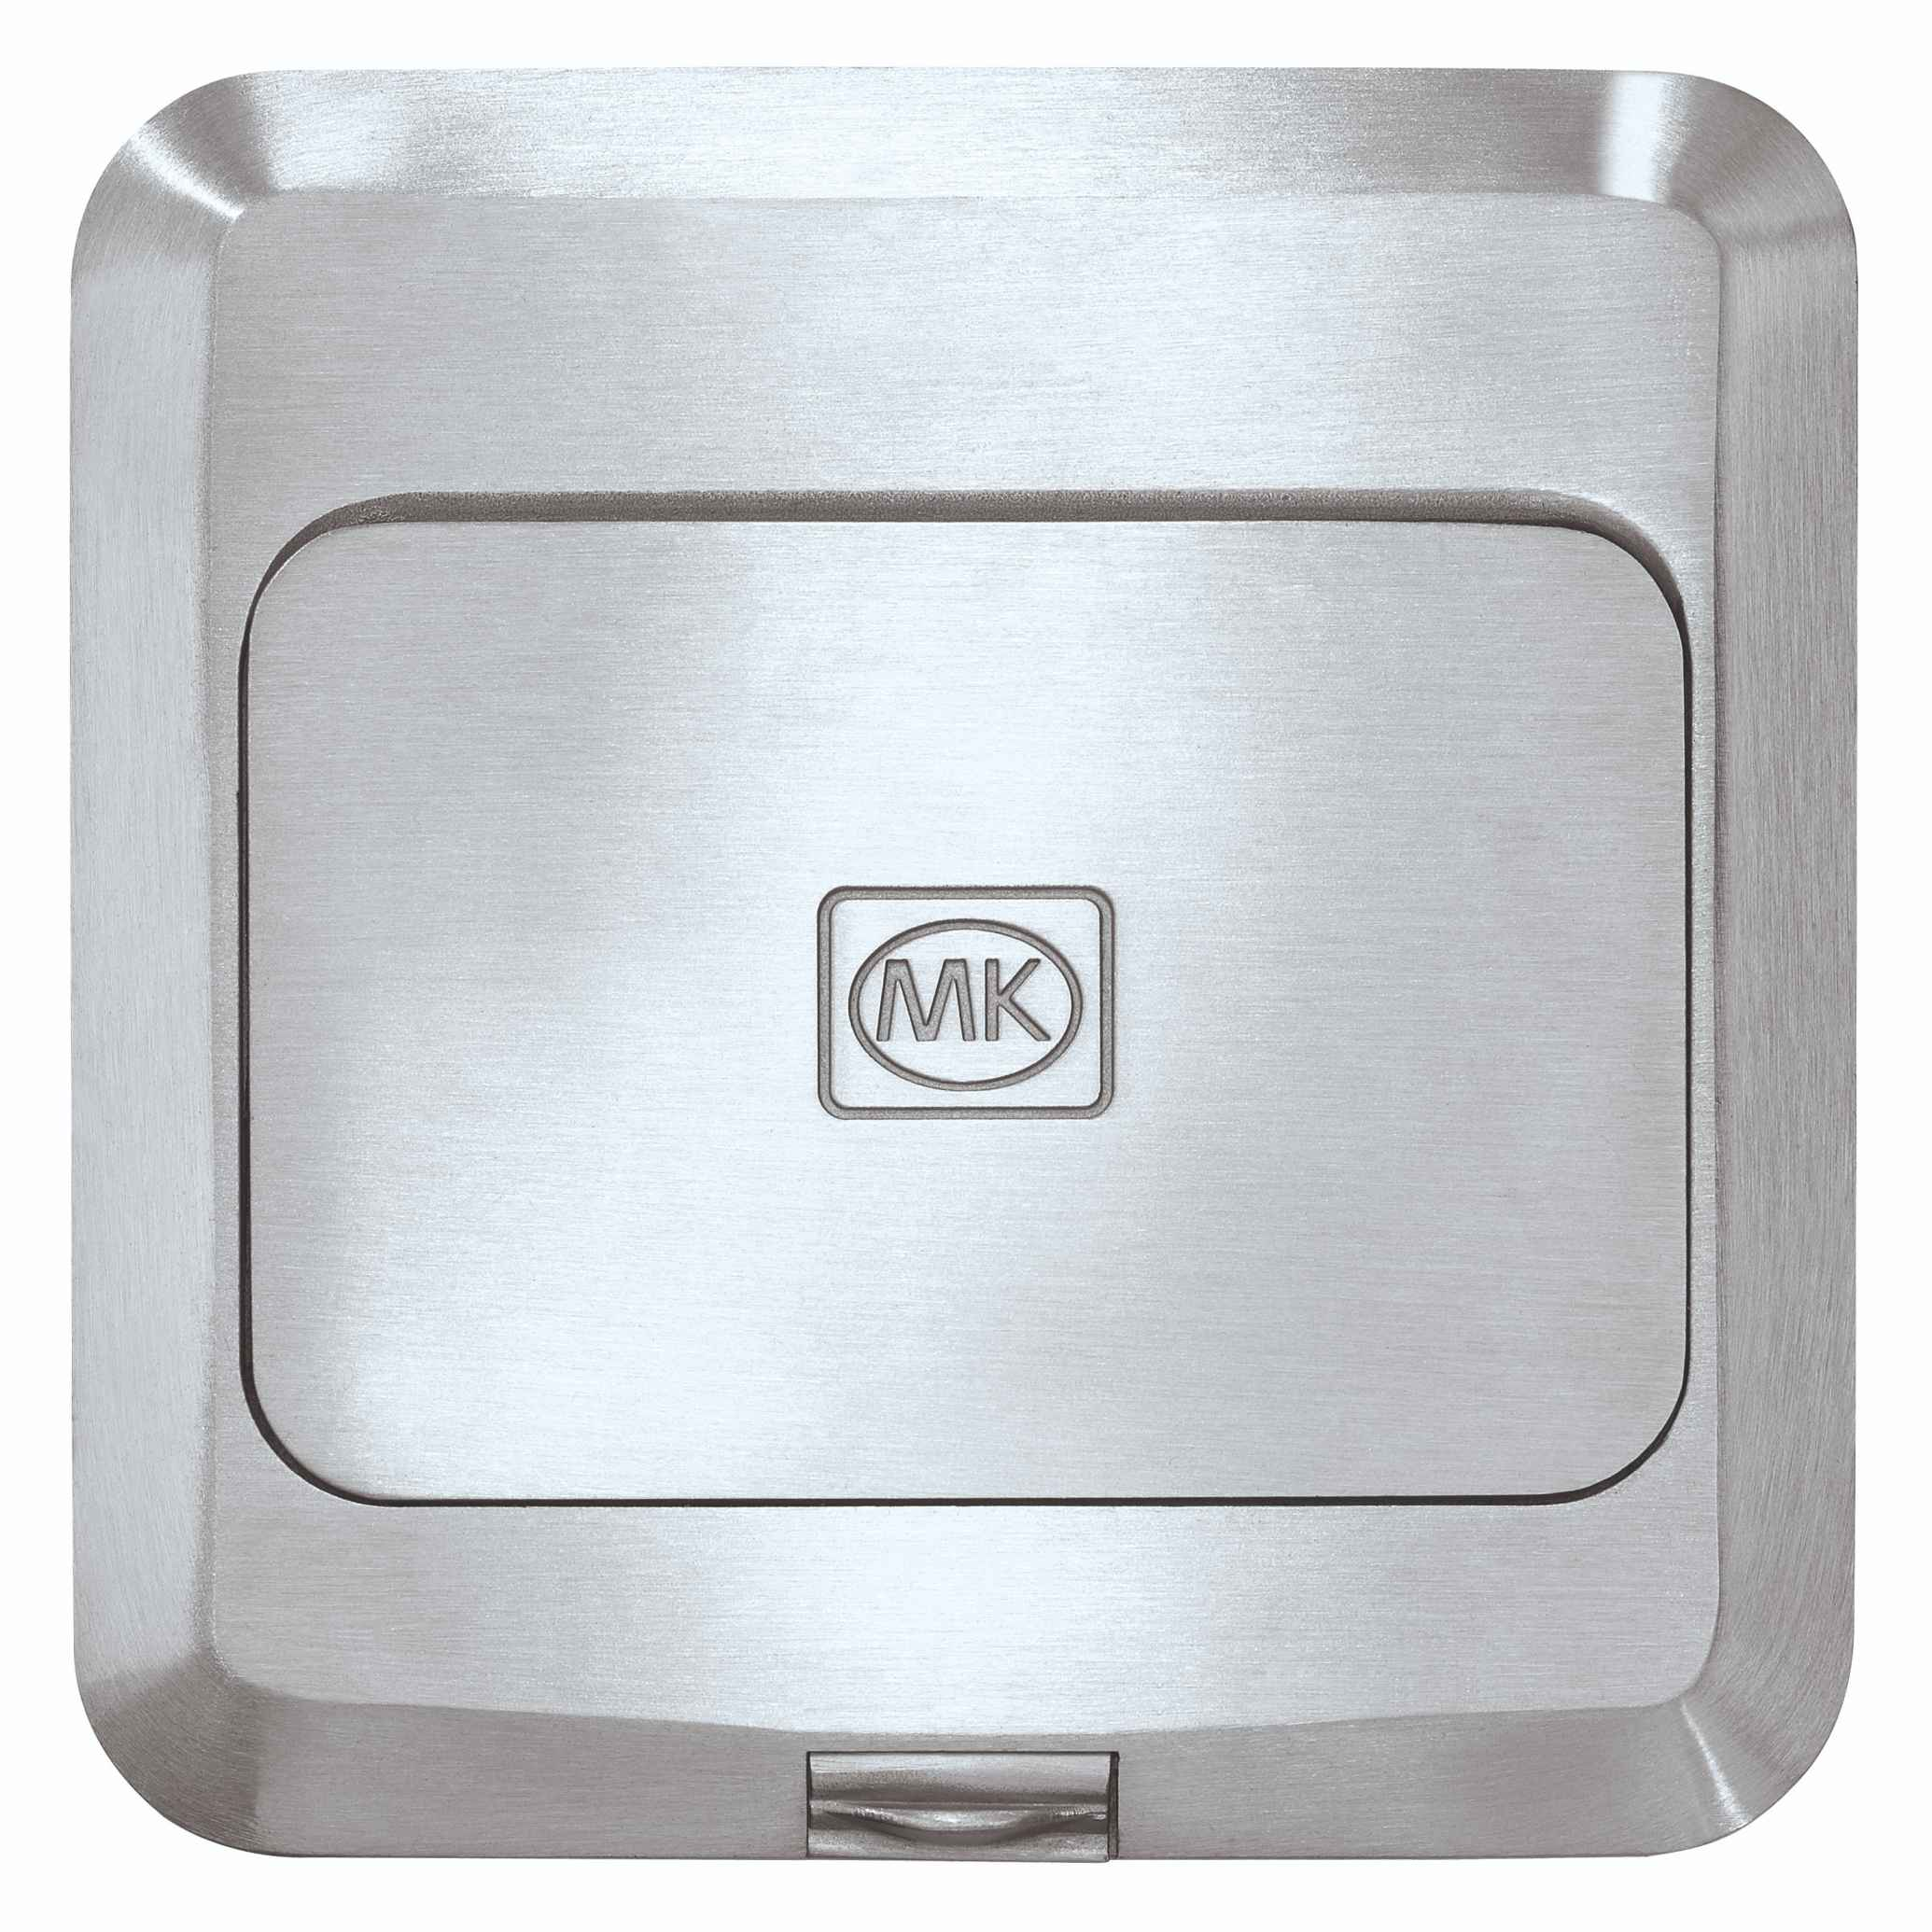 Best MK products in Doha